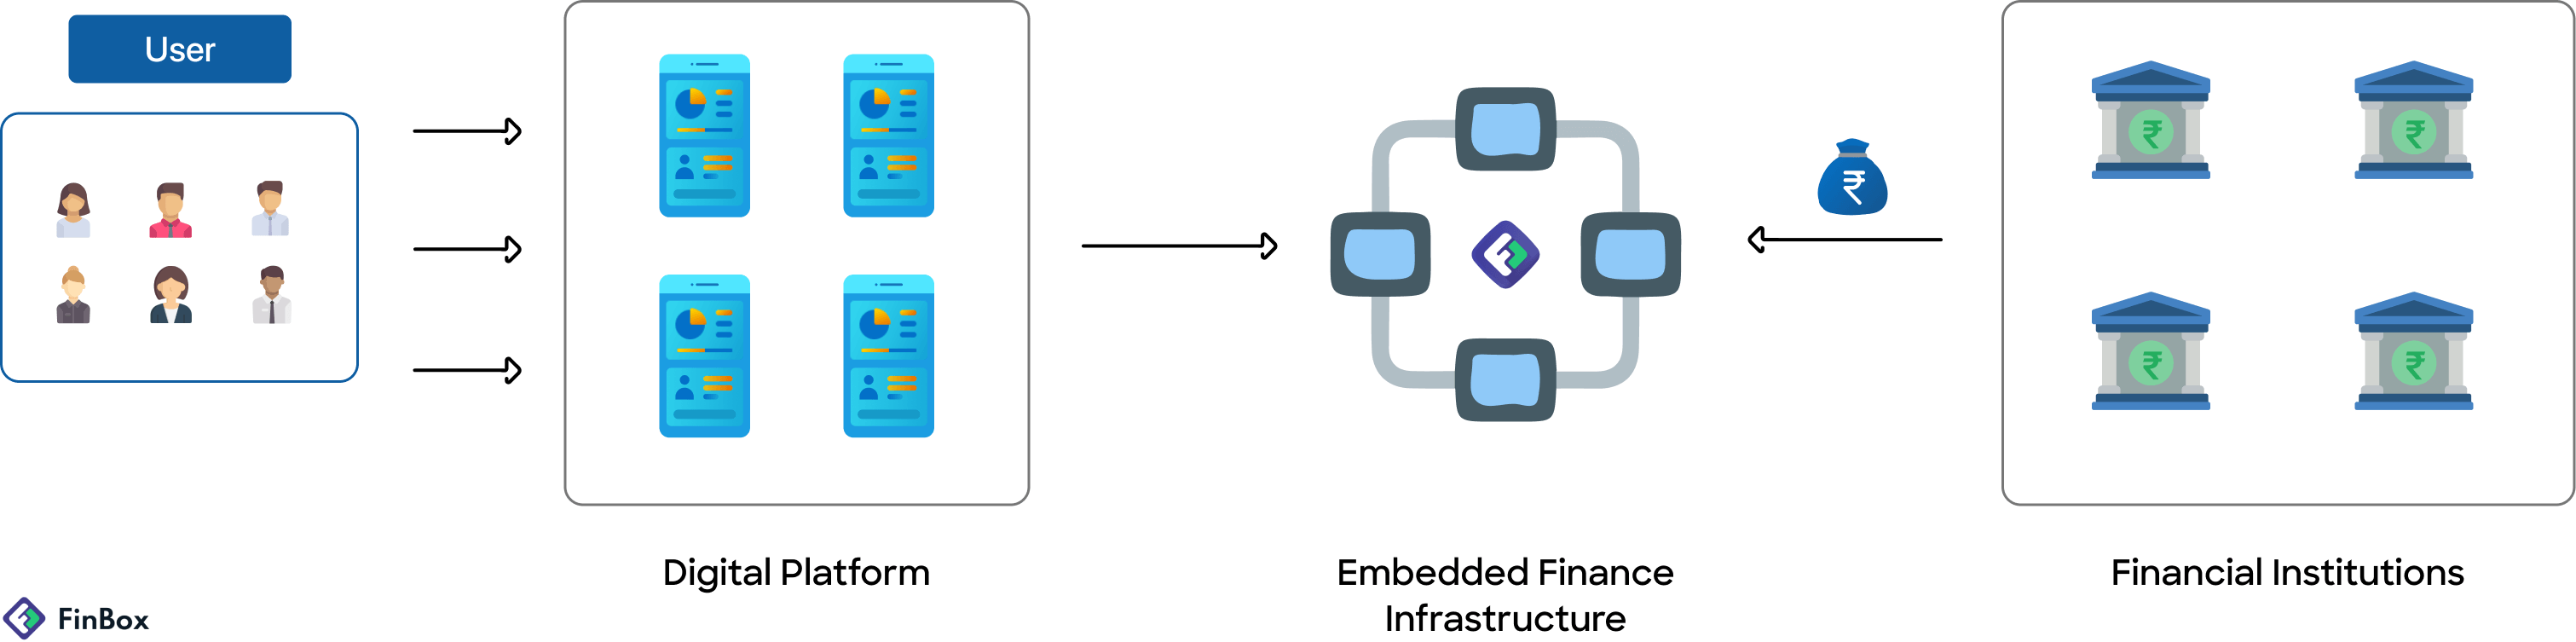 In embedded finance,  A digital platform, an embedded finance infrastructure company (fintech), and a financial institution like a bank or NBFC cooperate to deliver value.